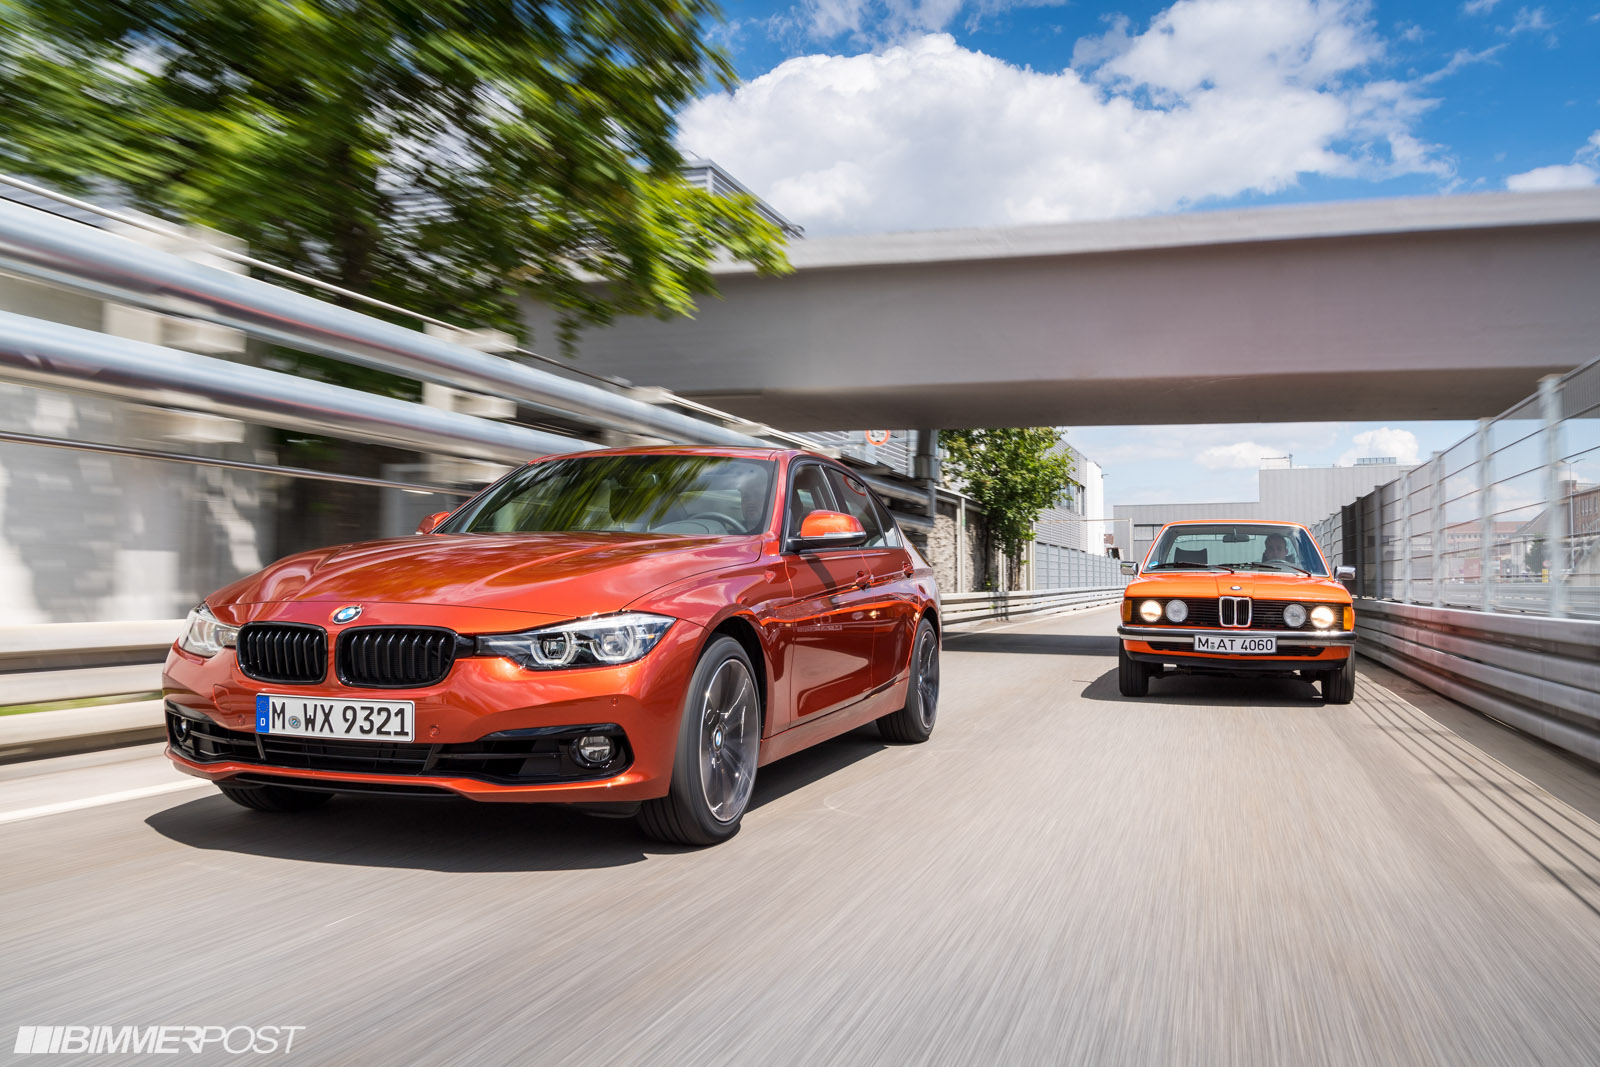 Production launch of new edition models of the bmw 3 series sedan and touring